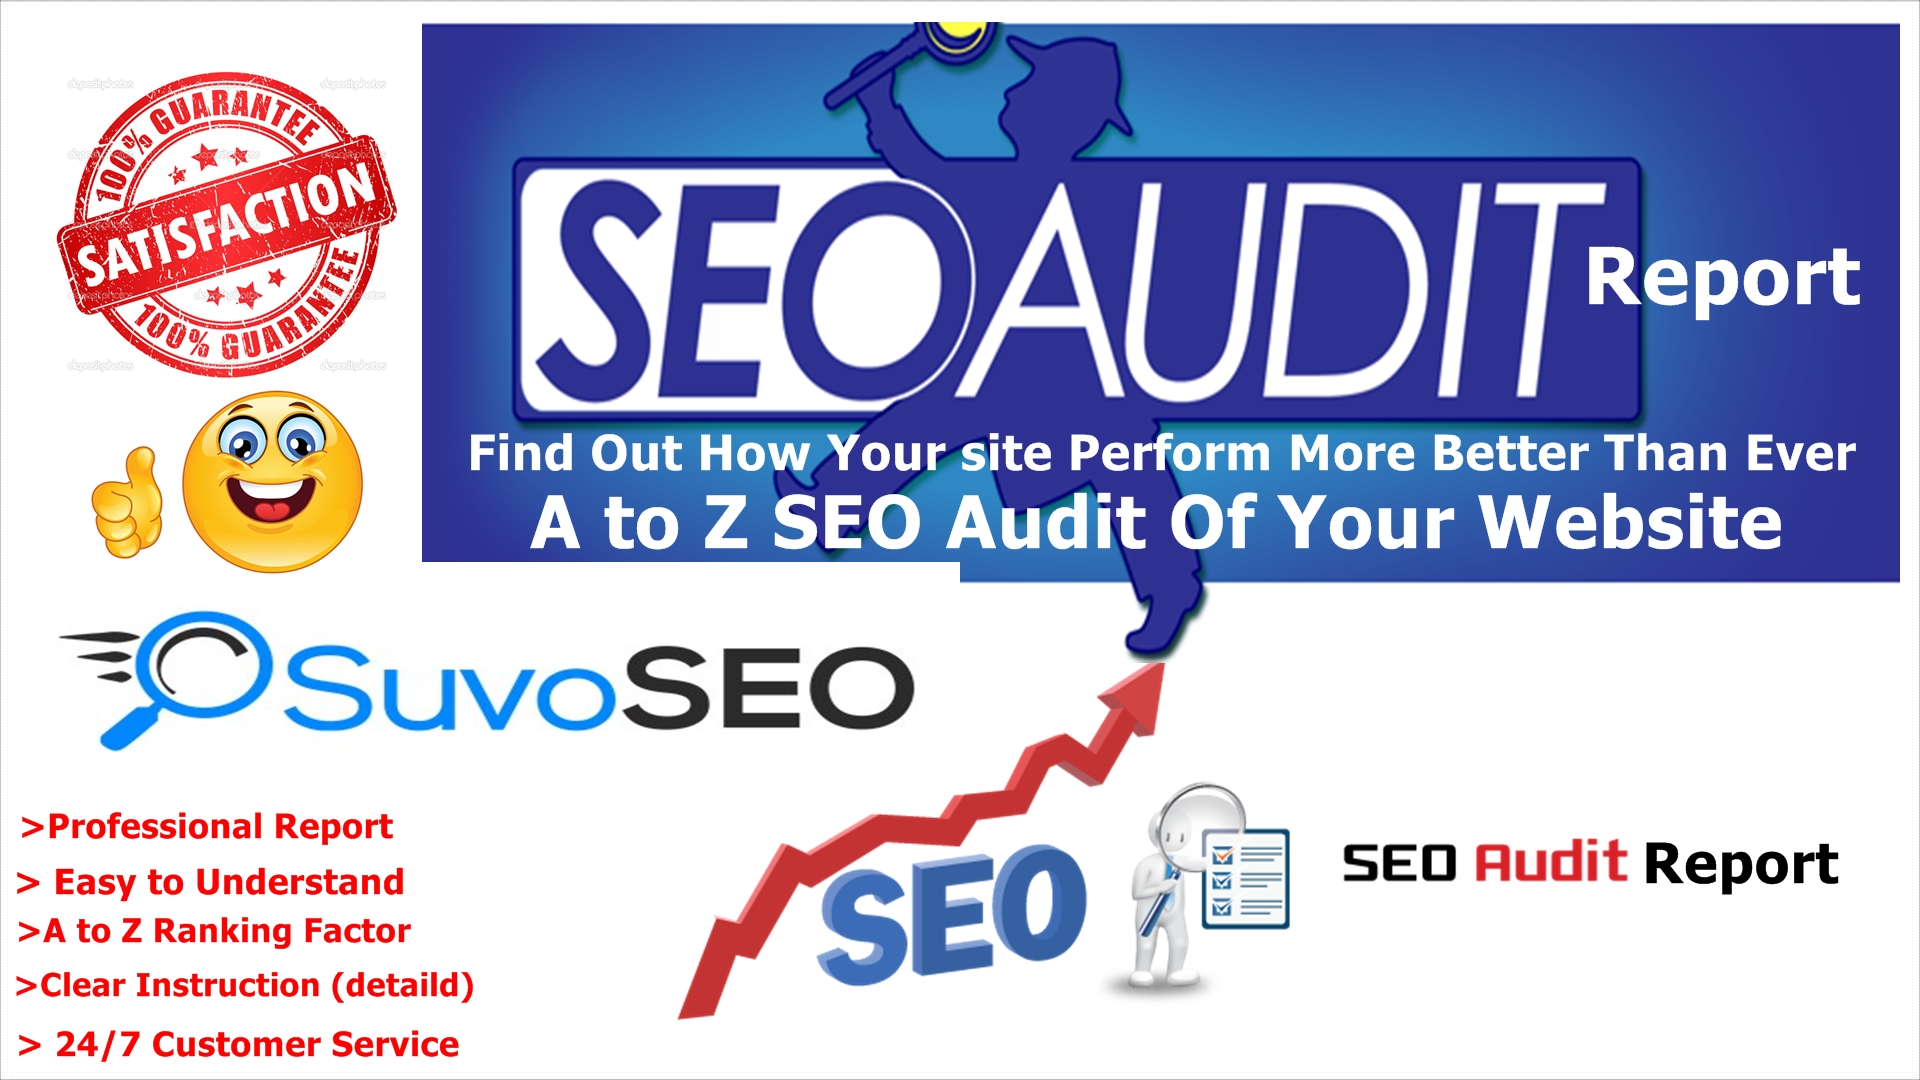 high quality website audit report and google seo ranking factors this advanced seo audit report will cover these things for you our professional seo audit gives you 10004titles 10004meta descriptions 10004meta keywords